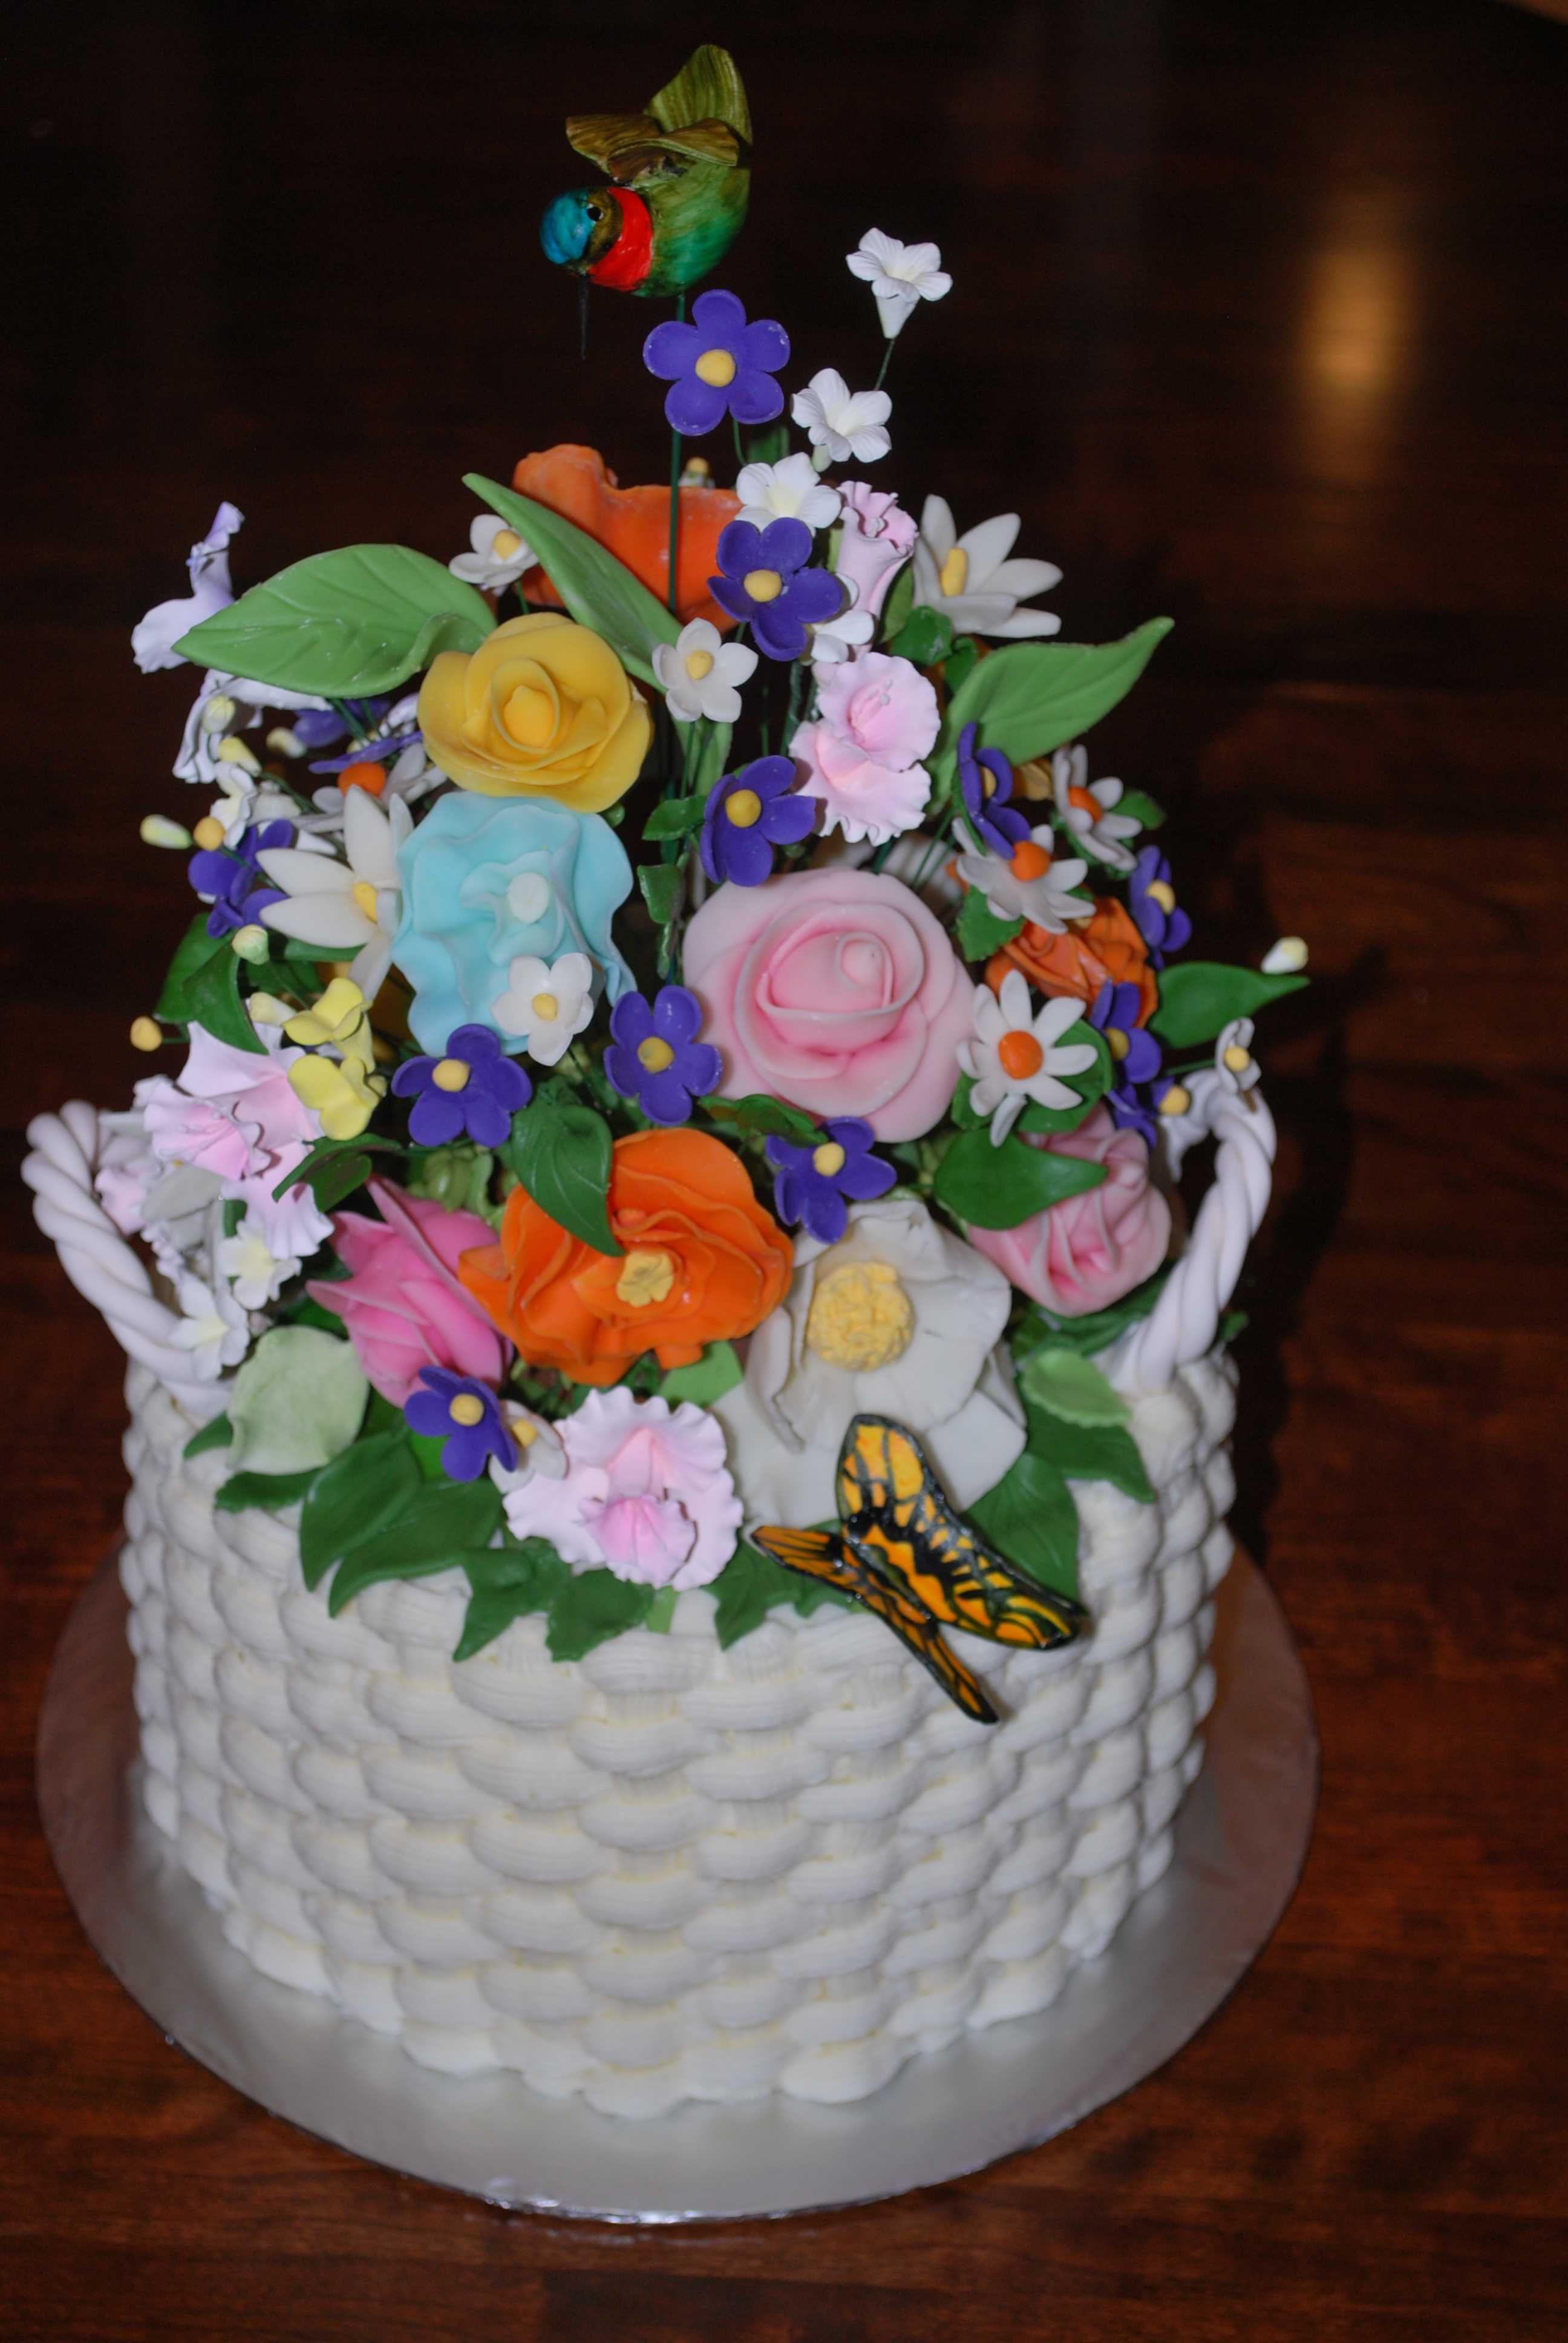 flower garden cake i made this garden theme cake for a birthday three layer cake with basket weave design handmade fondant flowers hummingbird and - Garden Design Birthday Cake